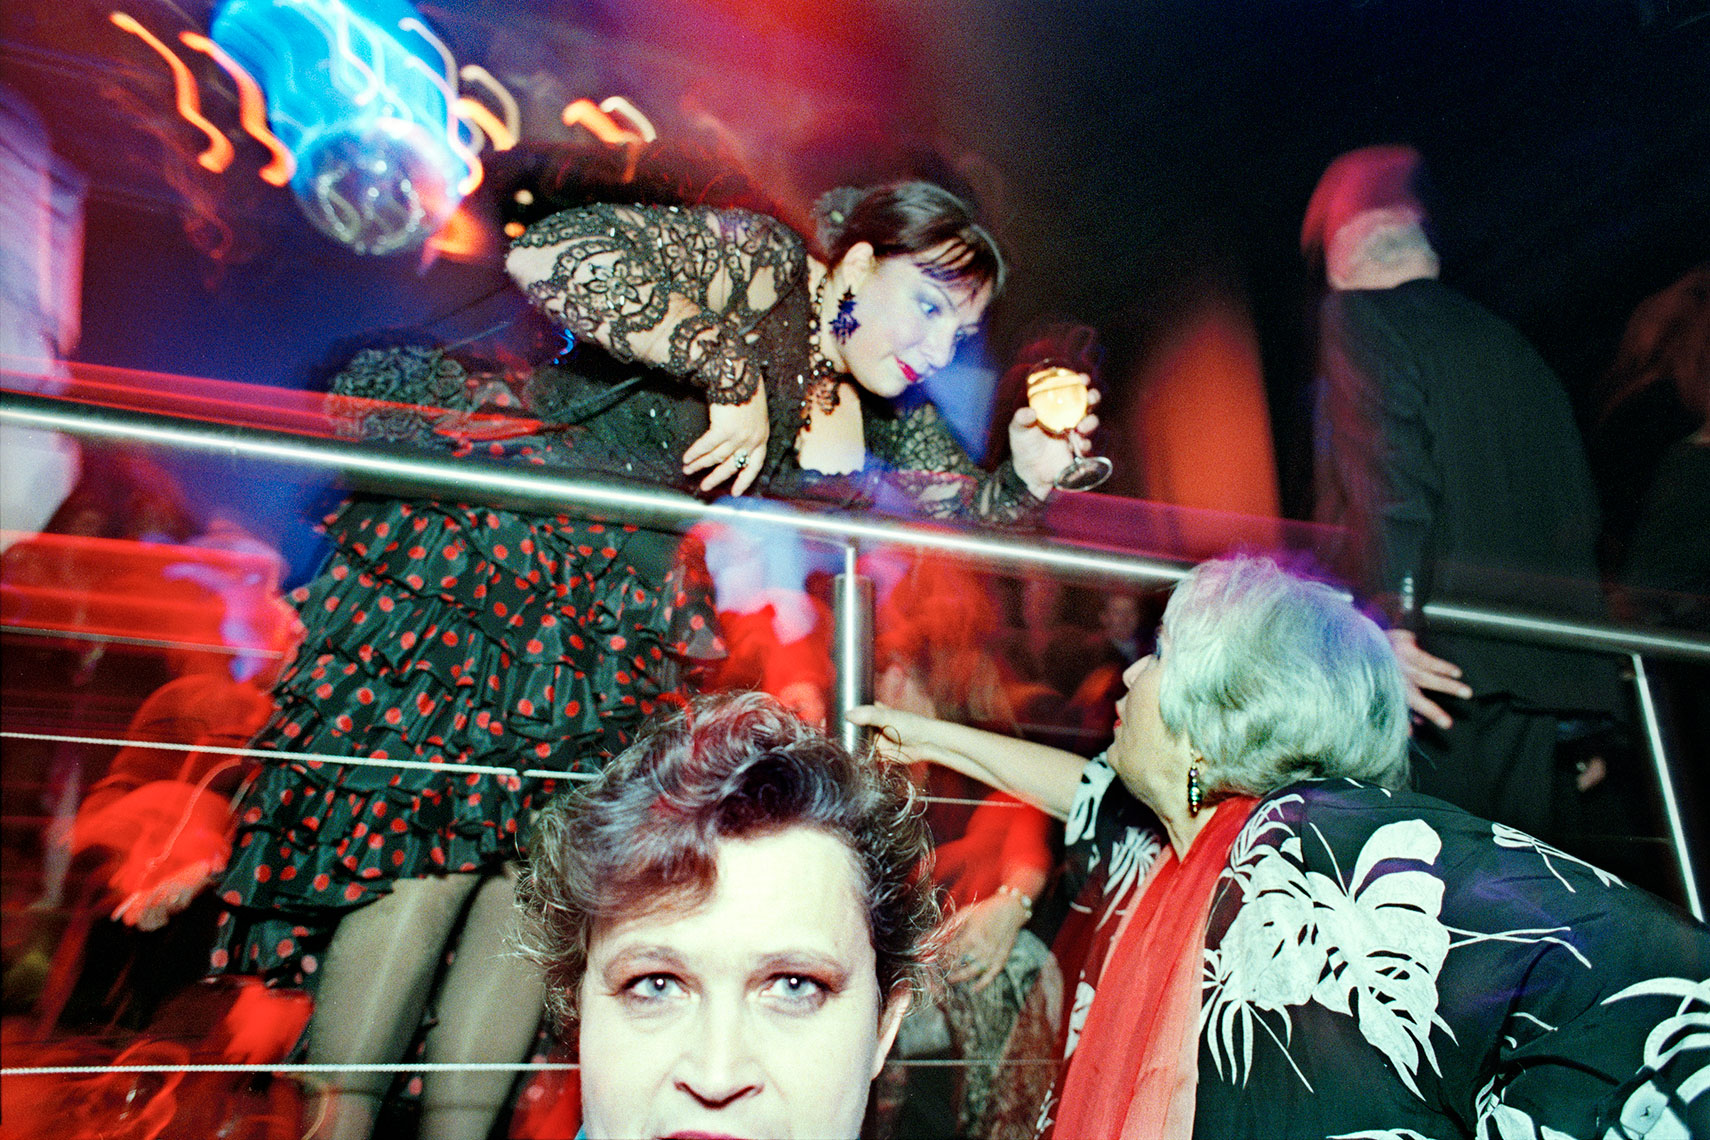 Xaviera Hollander (The Happy Hooker) and friends at a party in Amsterdam nightclub Escape | Mike Harris Photography